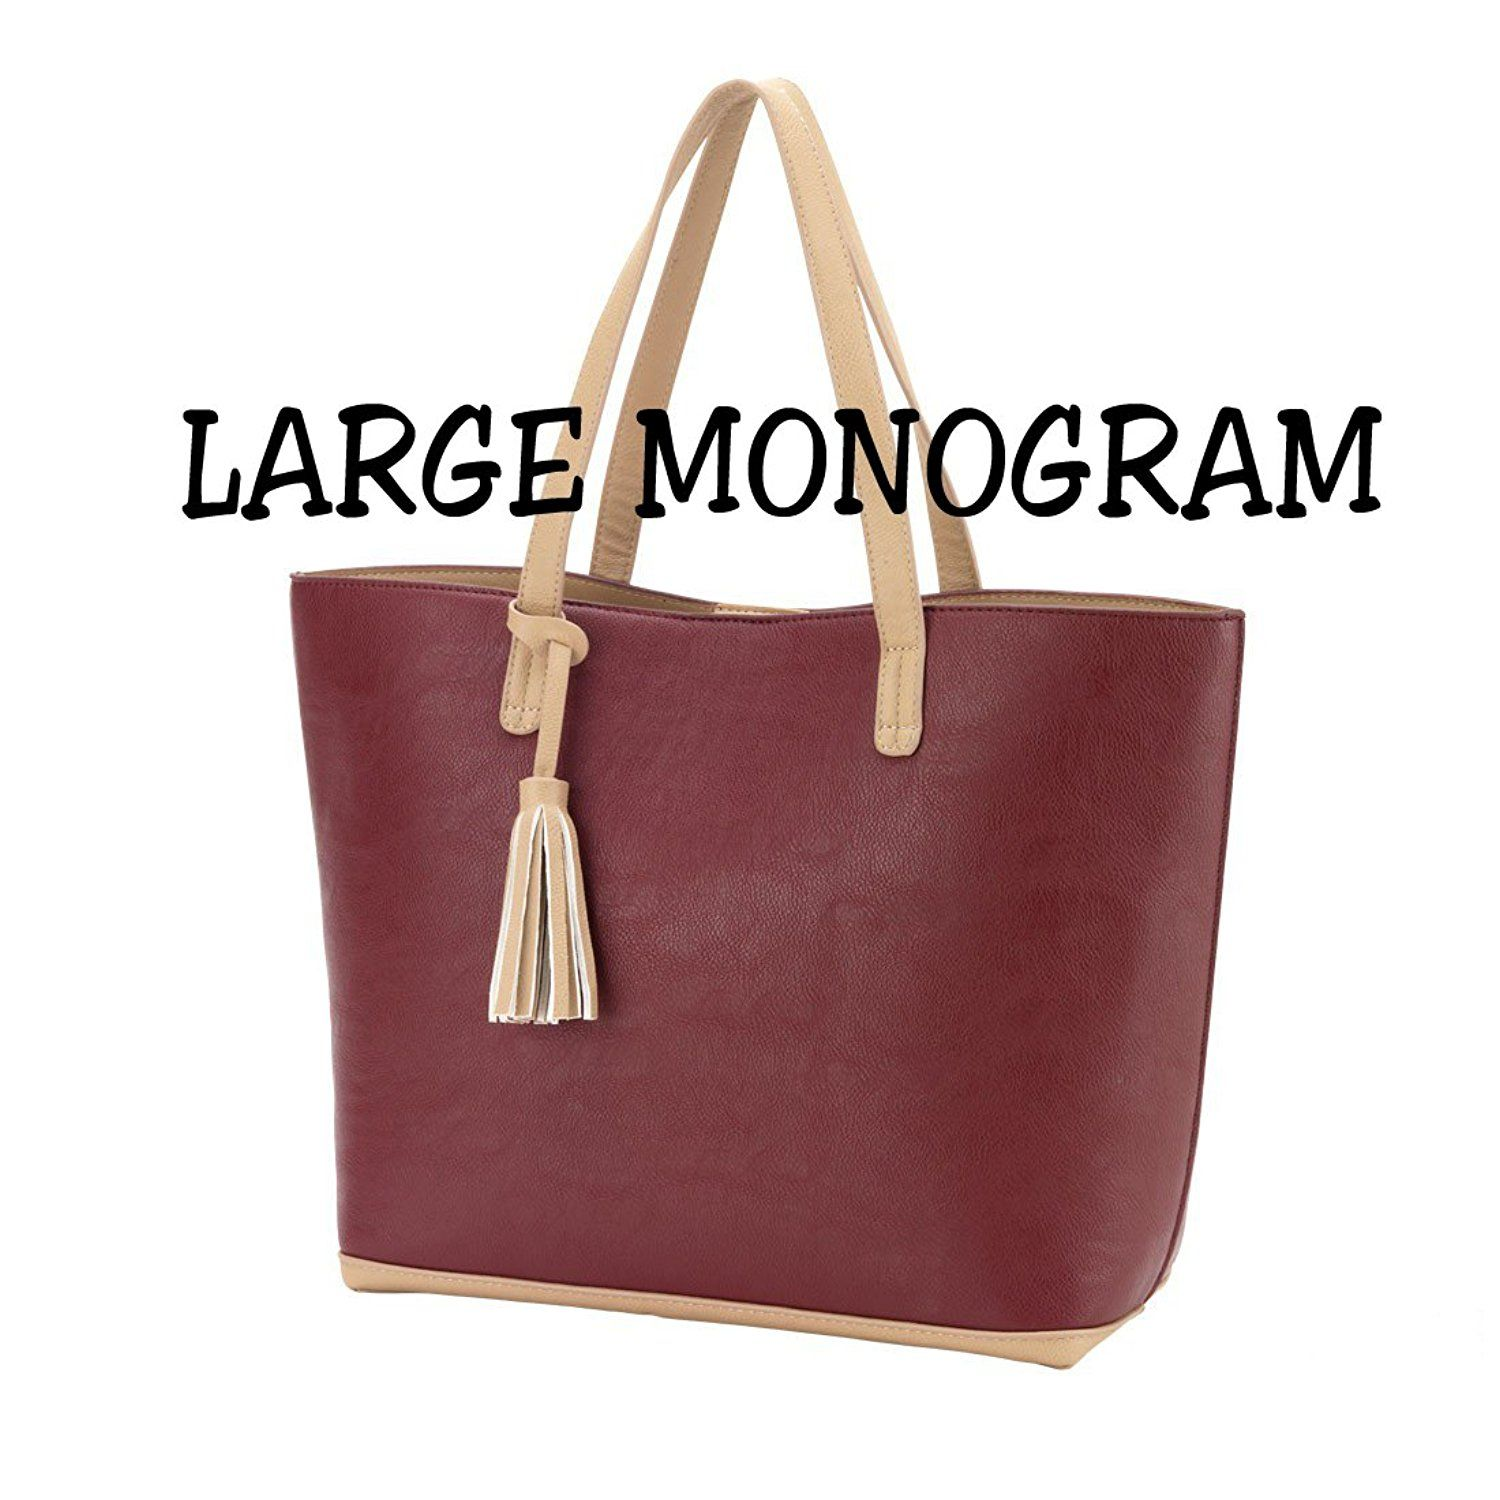 High Fashion Aubrey Tote Bag Purse Can Be Personalized Click Image For More Details This Is An Amazon Affiliate Link Tote Bag Purse Purses And Bags Bags